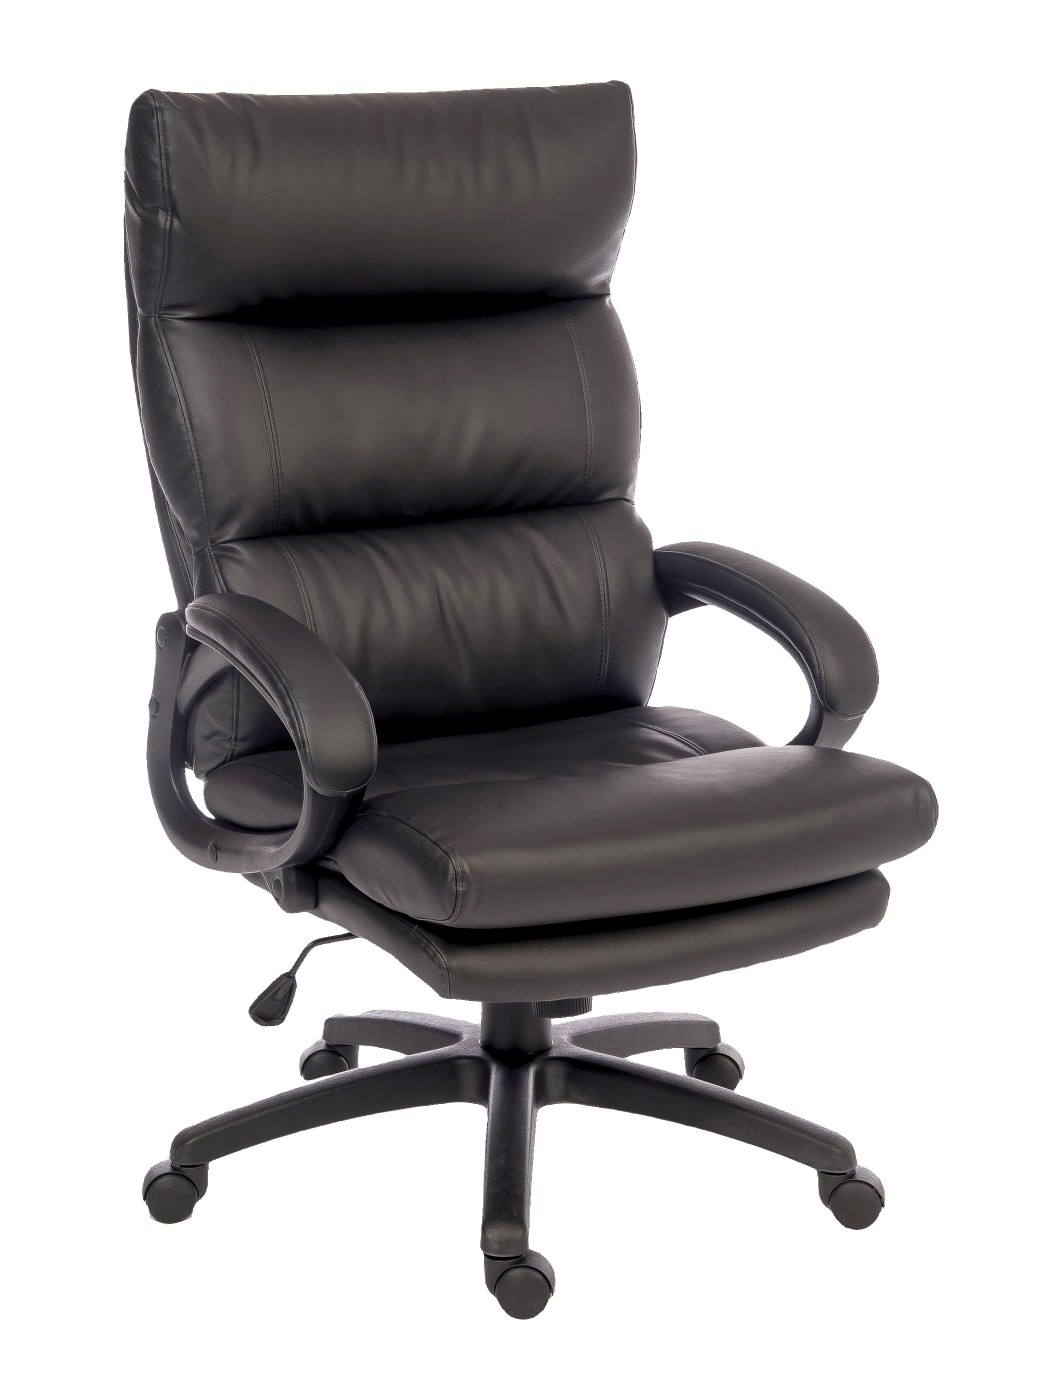 Executive Chair Luxe Executive Office Chair 6913 121 Office Furniture